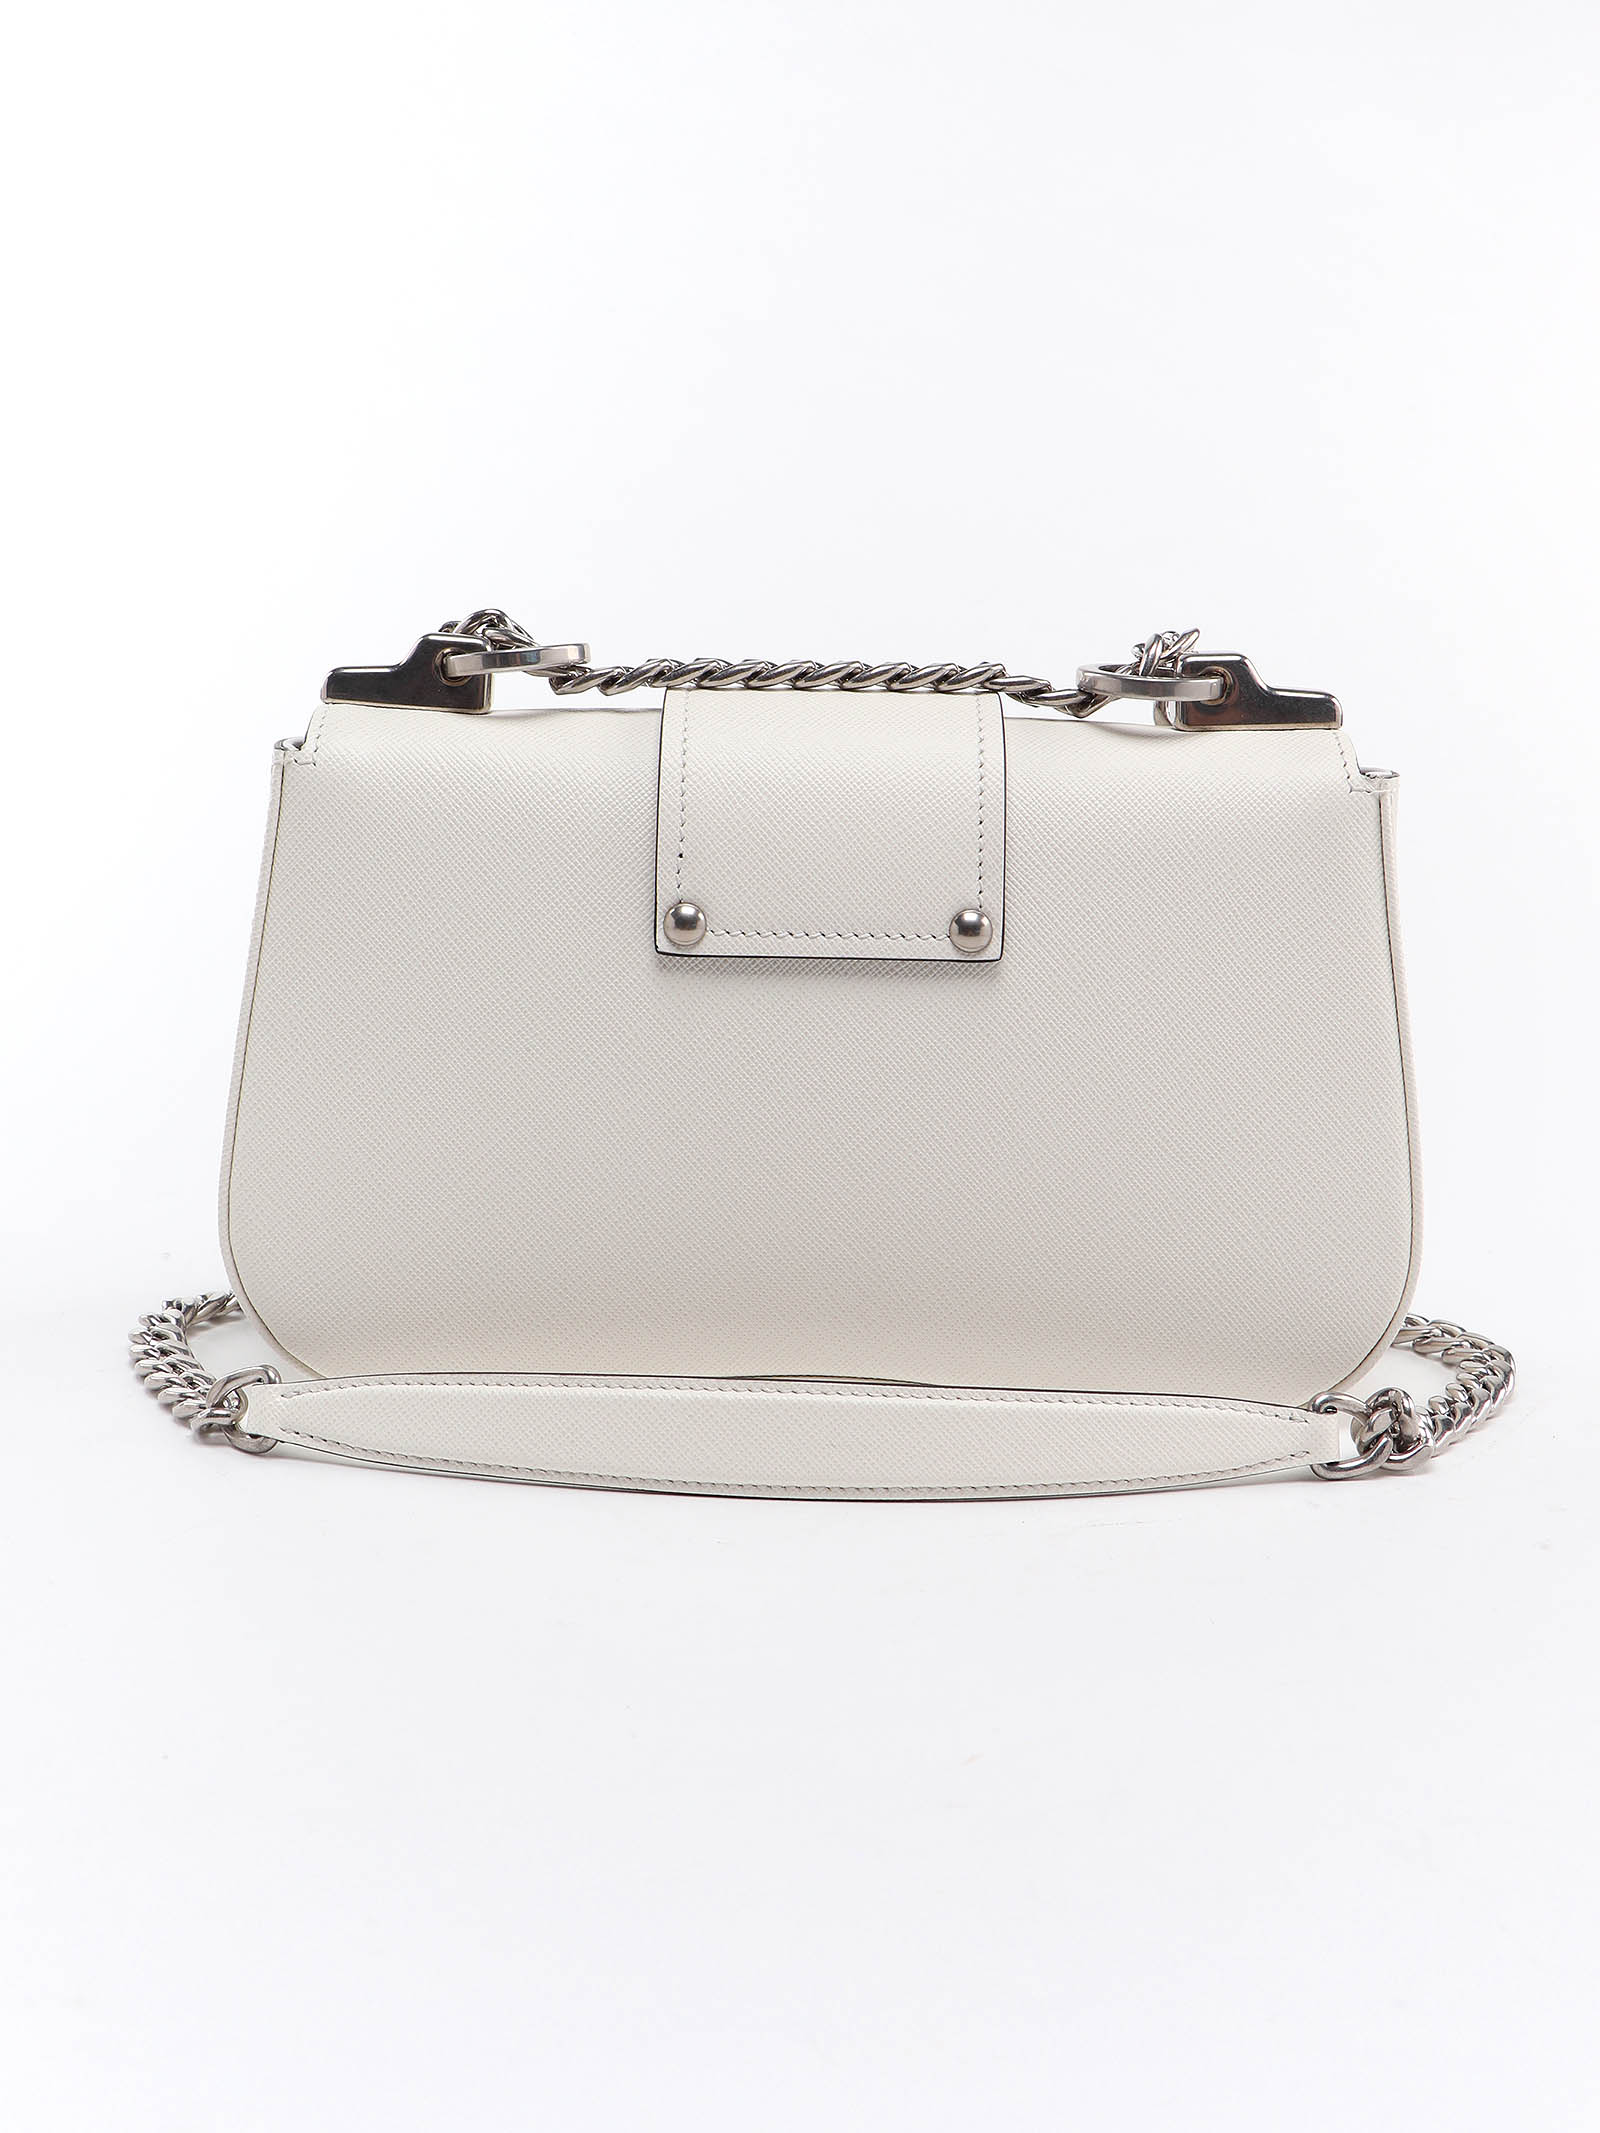 Picture of Prada | Sidonie Saffiano Bag